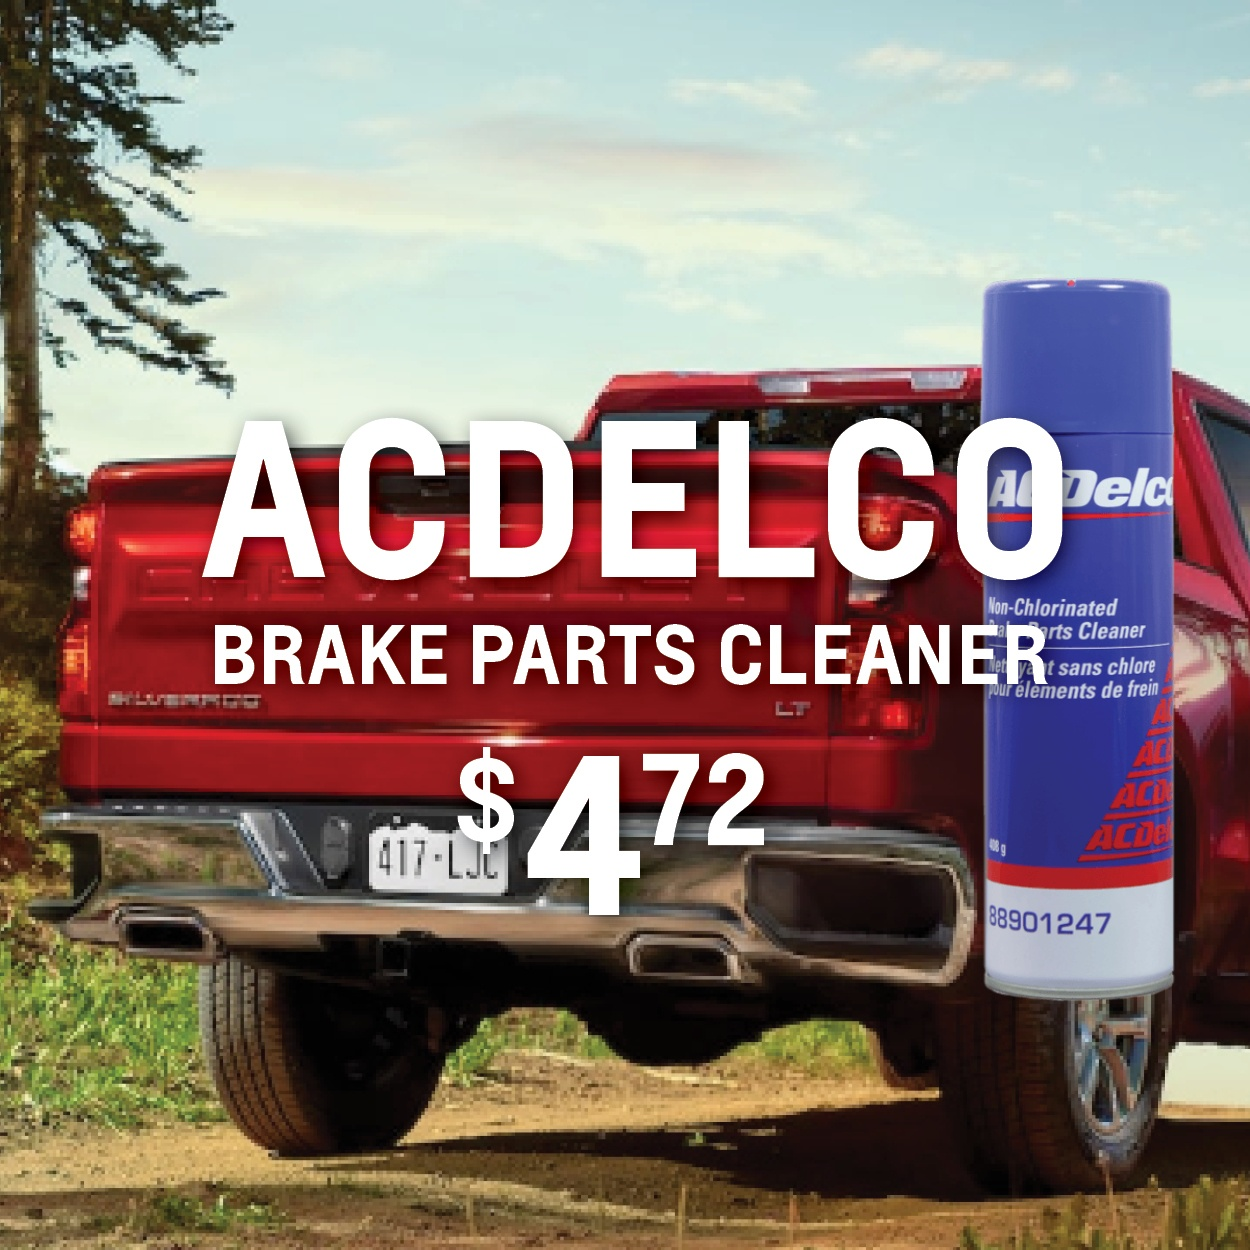 ACDelco Brake Parts Cleaner